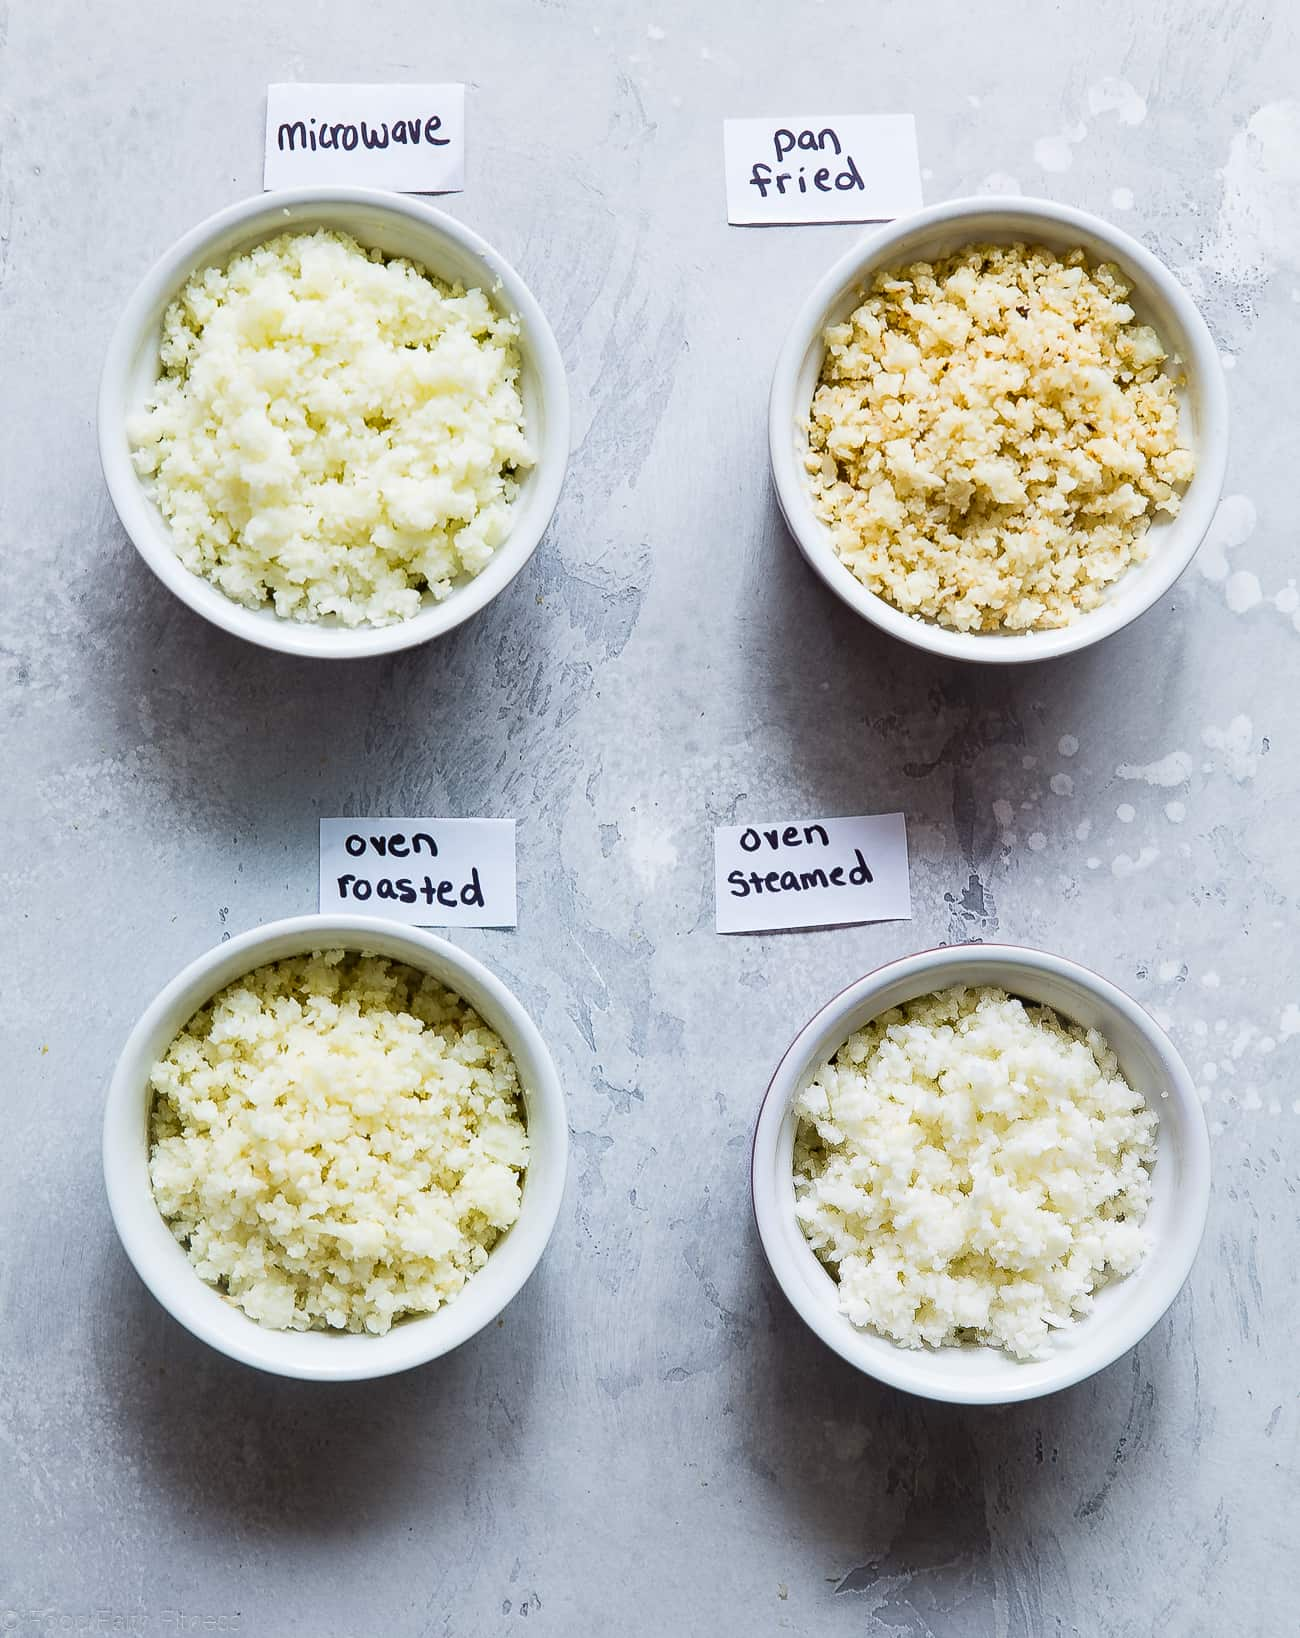 4 Easy Ways to Cook Cauliflower Rice - Ever wondered how to cook cauliflower rice without a microwave? Here are 4 simple and healthy ways to cook cauliflower rice! | #Foodfaithfitness | #Glutenfree #Keto #Lowcarb #healthy #cauliflower